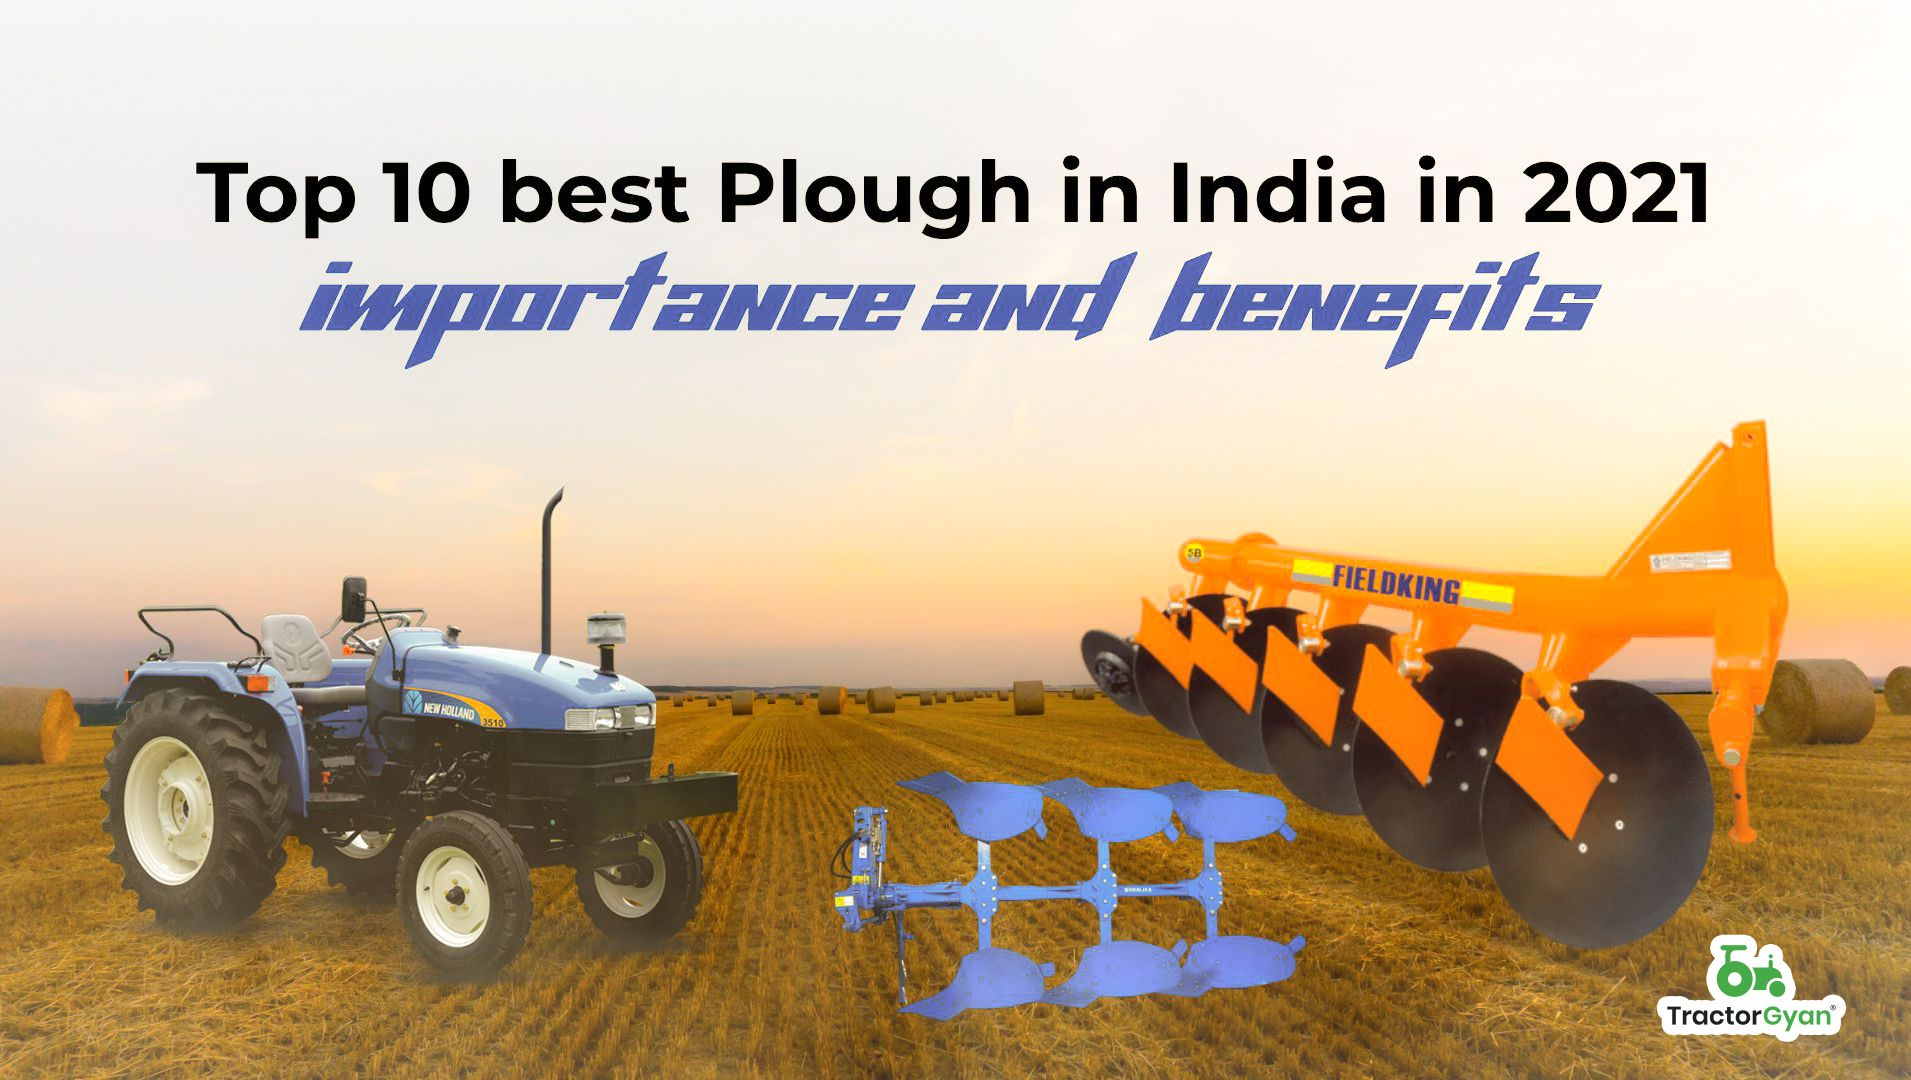 Top 10 best Plough in India in 2021   Importance and benefits